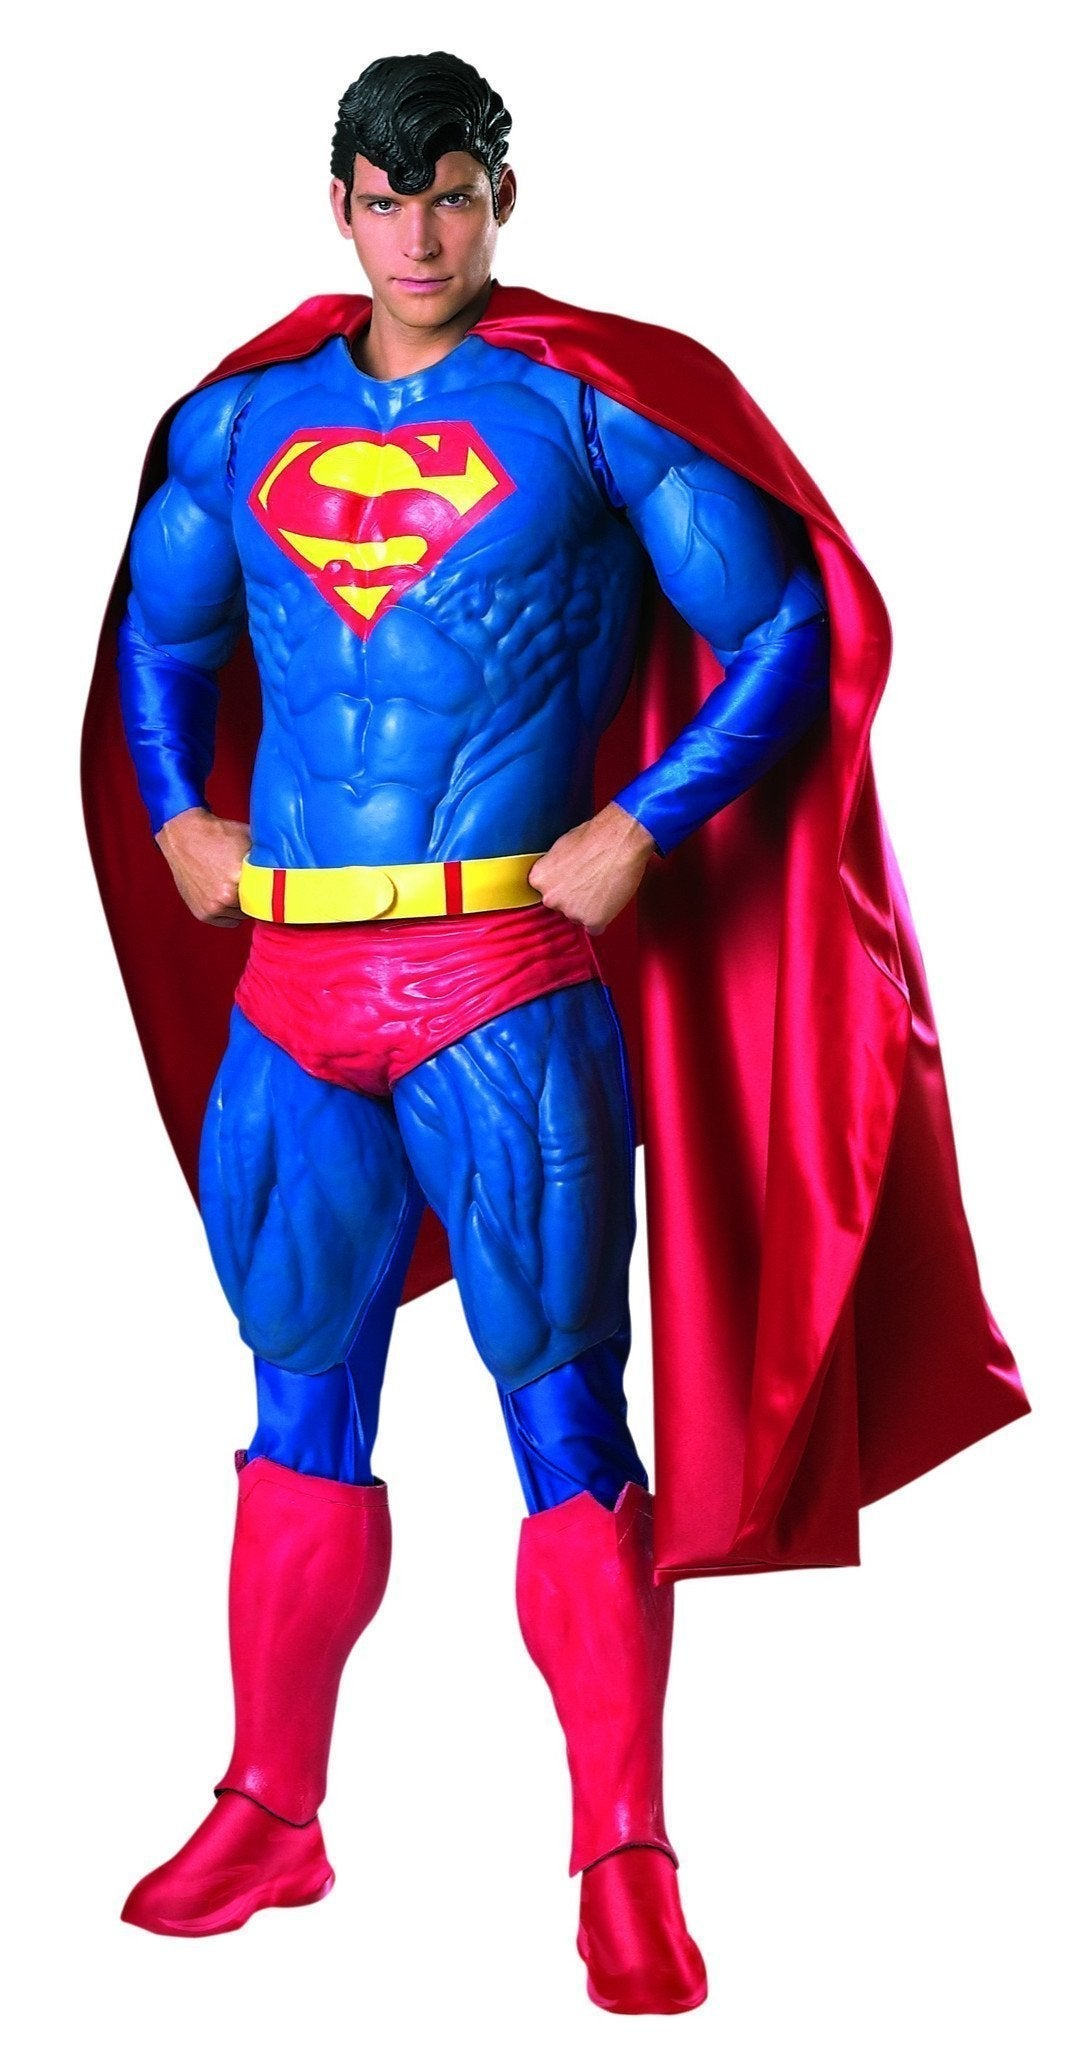 Superman Collector's Edition Costume for Adults - Warner Bros DC Comics